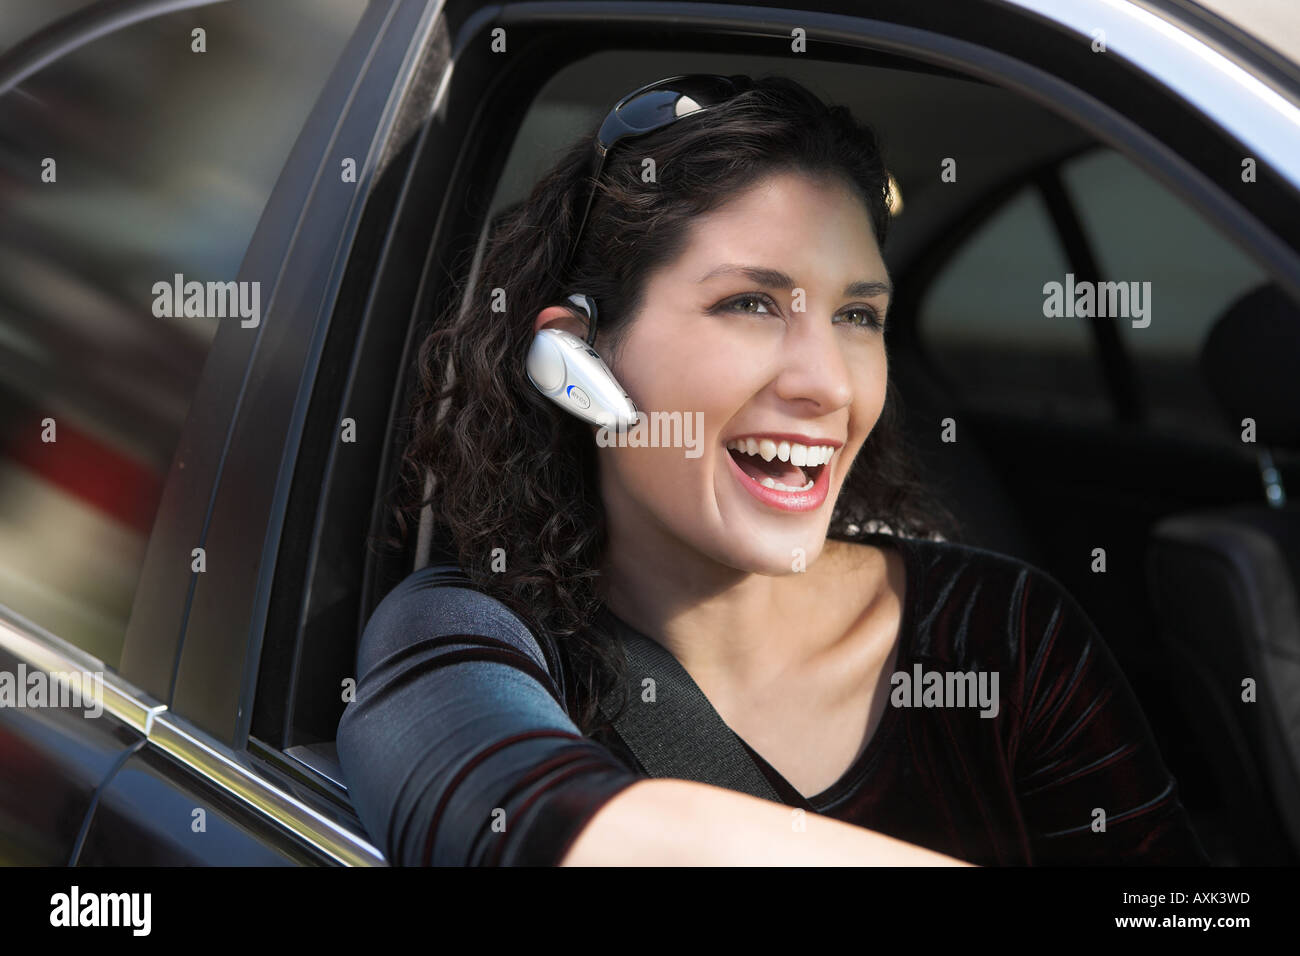 girl lady woman person on phone smile safety arm travel transport car movement travel drive - Stock Image